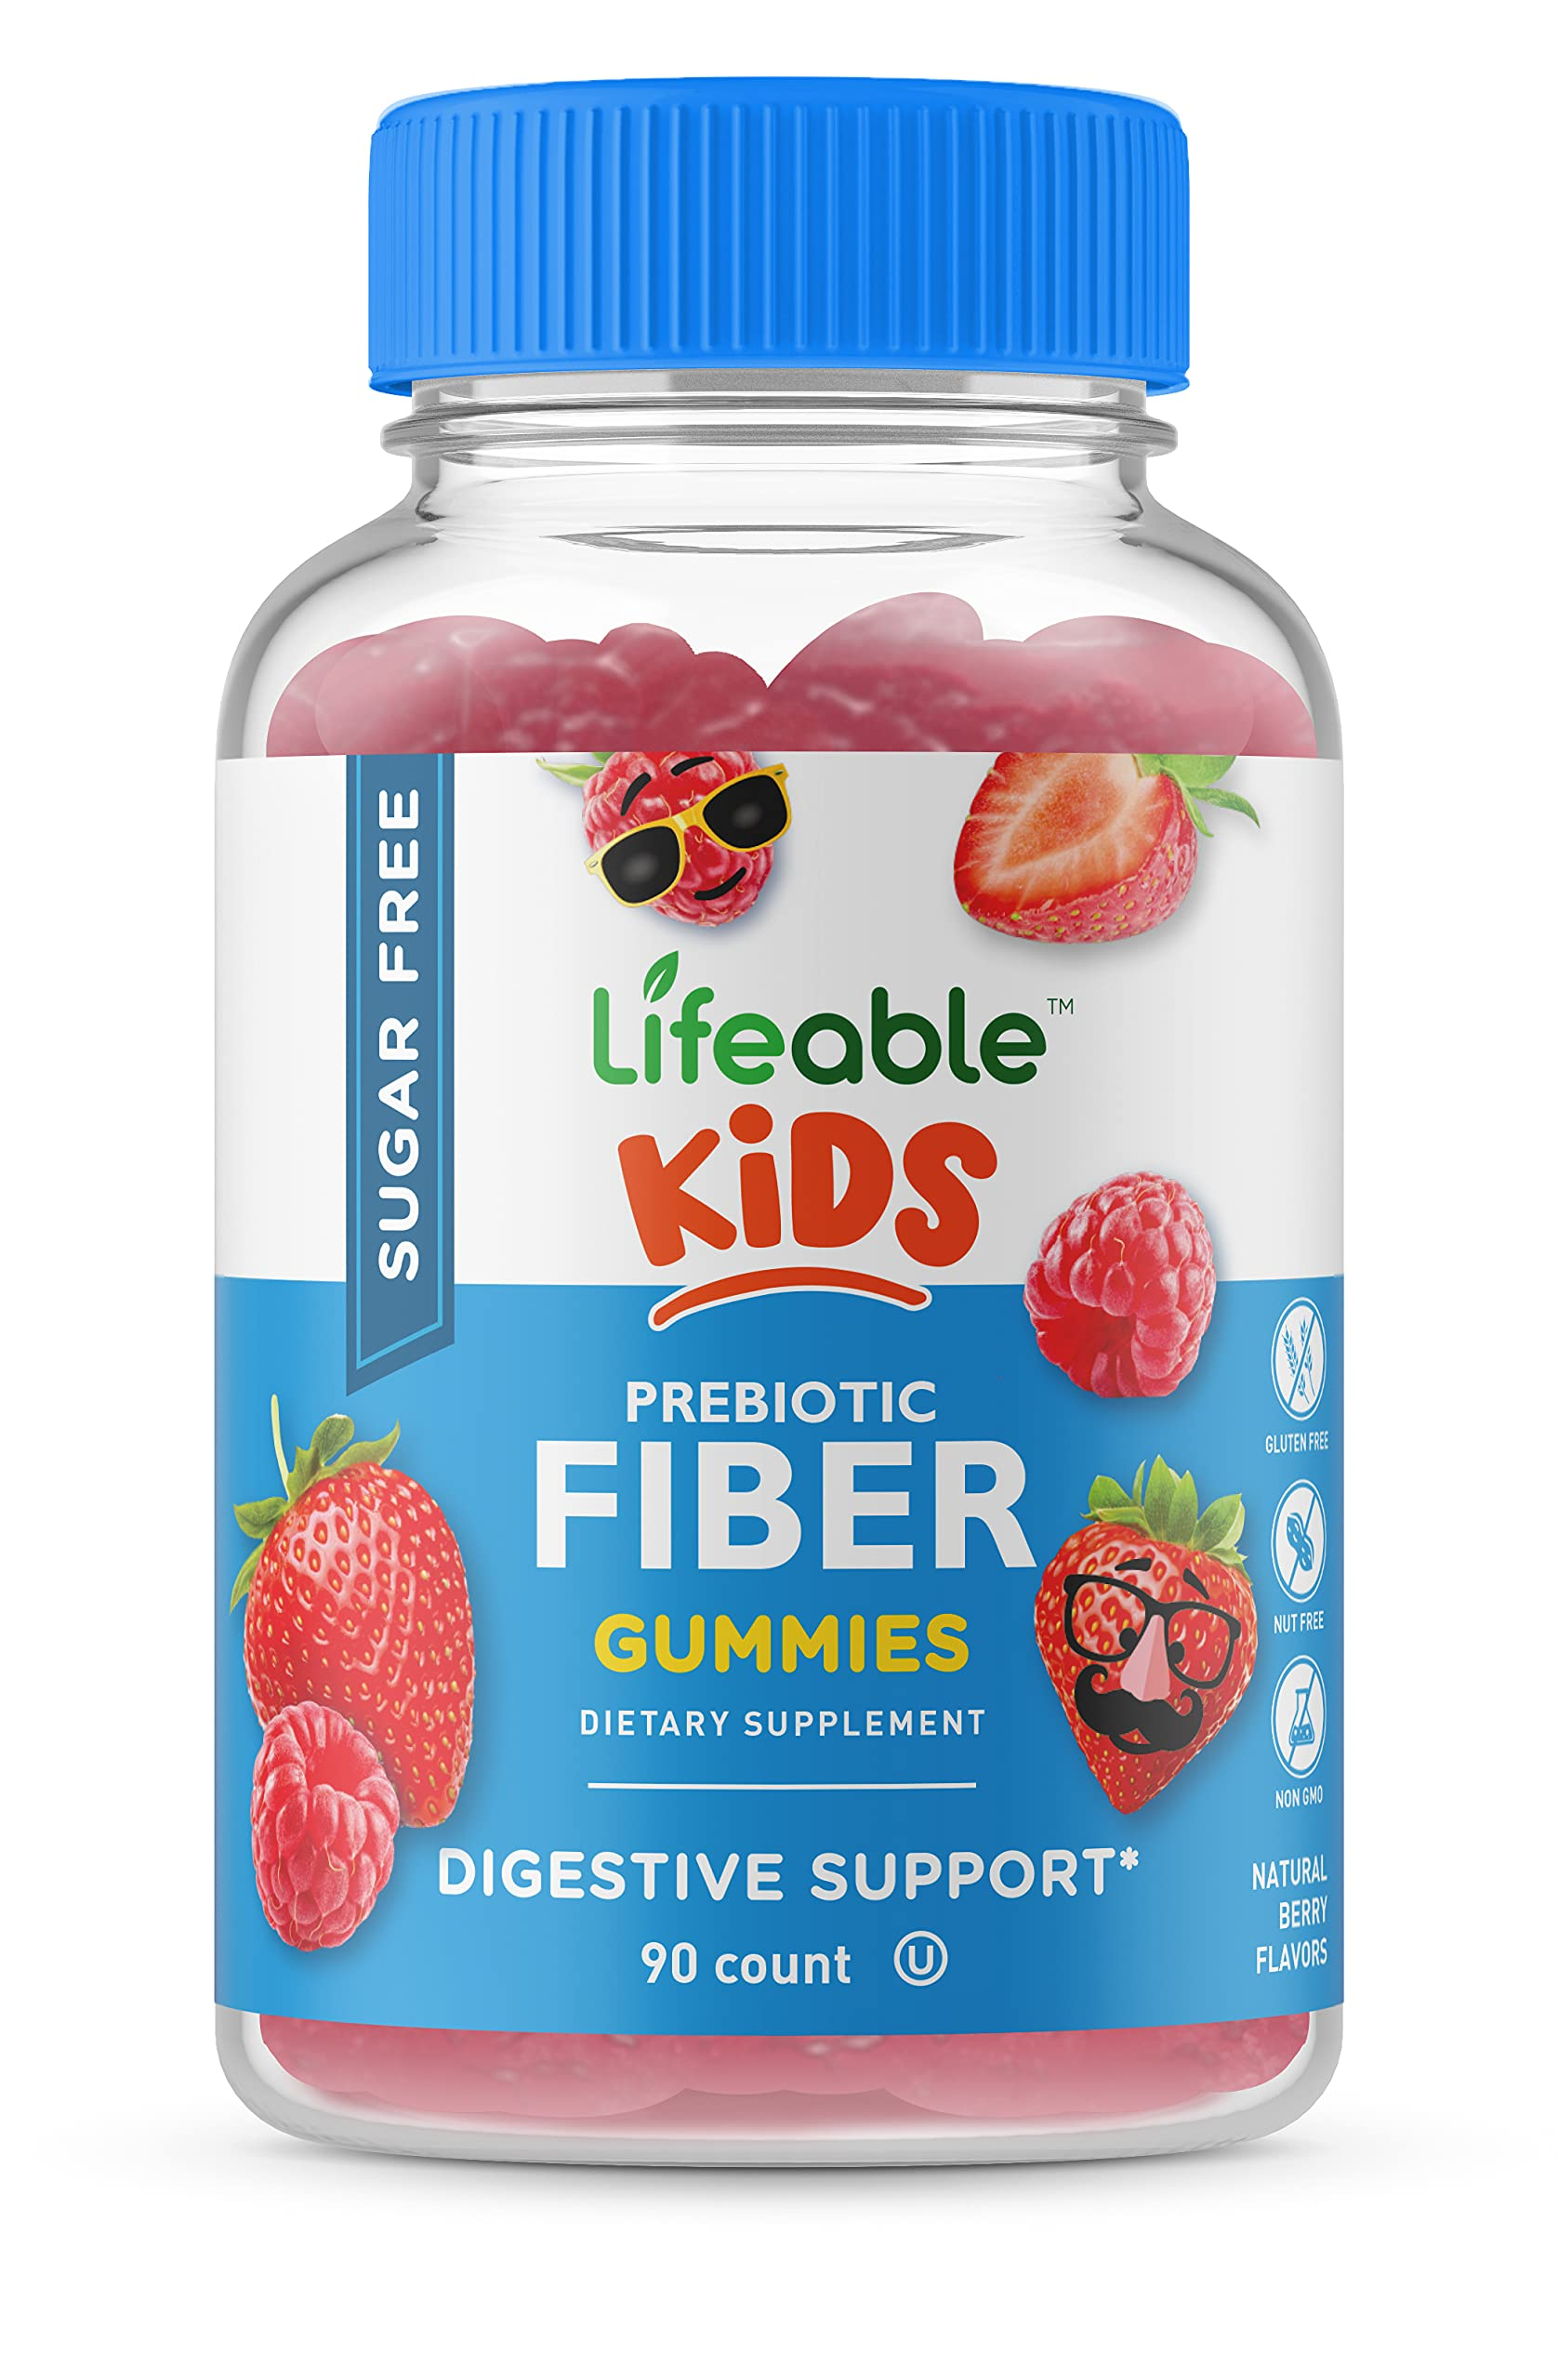 Lifeable Sugar Free Prebiotic Fiber for Kids – 4g – Great Tasting Natural Flavored Gummy – Gluten Free, Vegetarian, GMO Free Chewable – 90 Gummies – 45 Doses